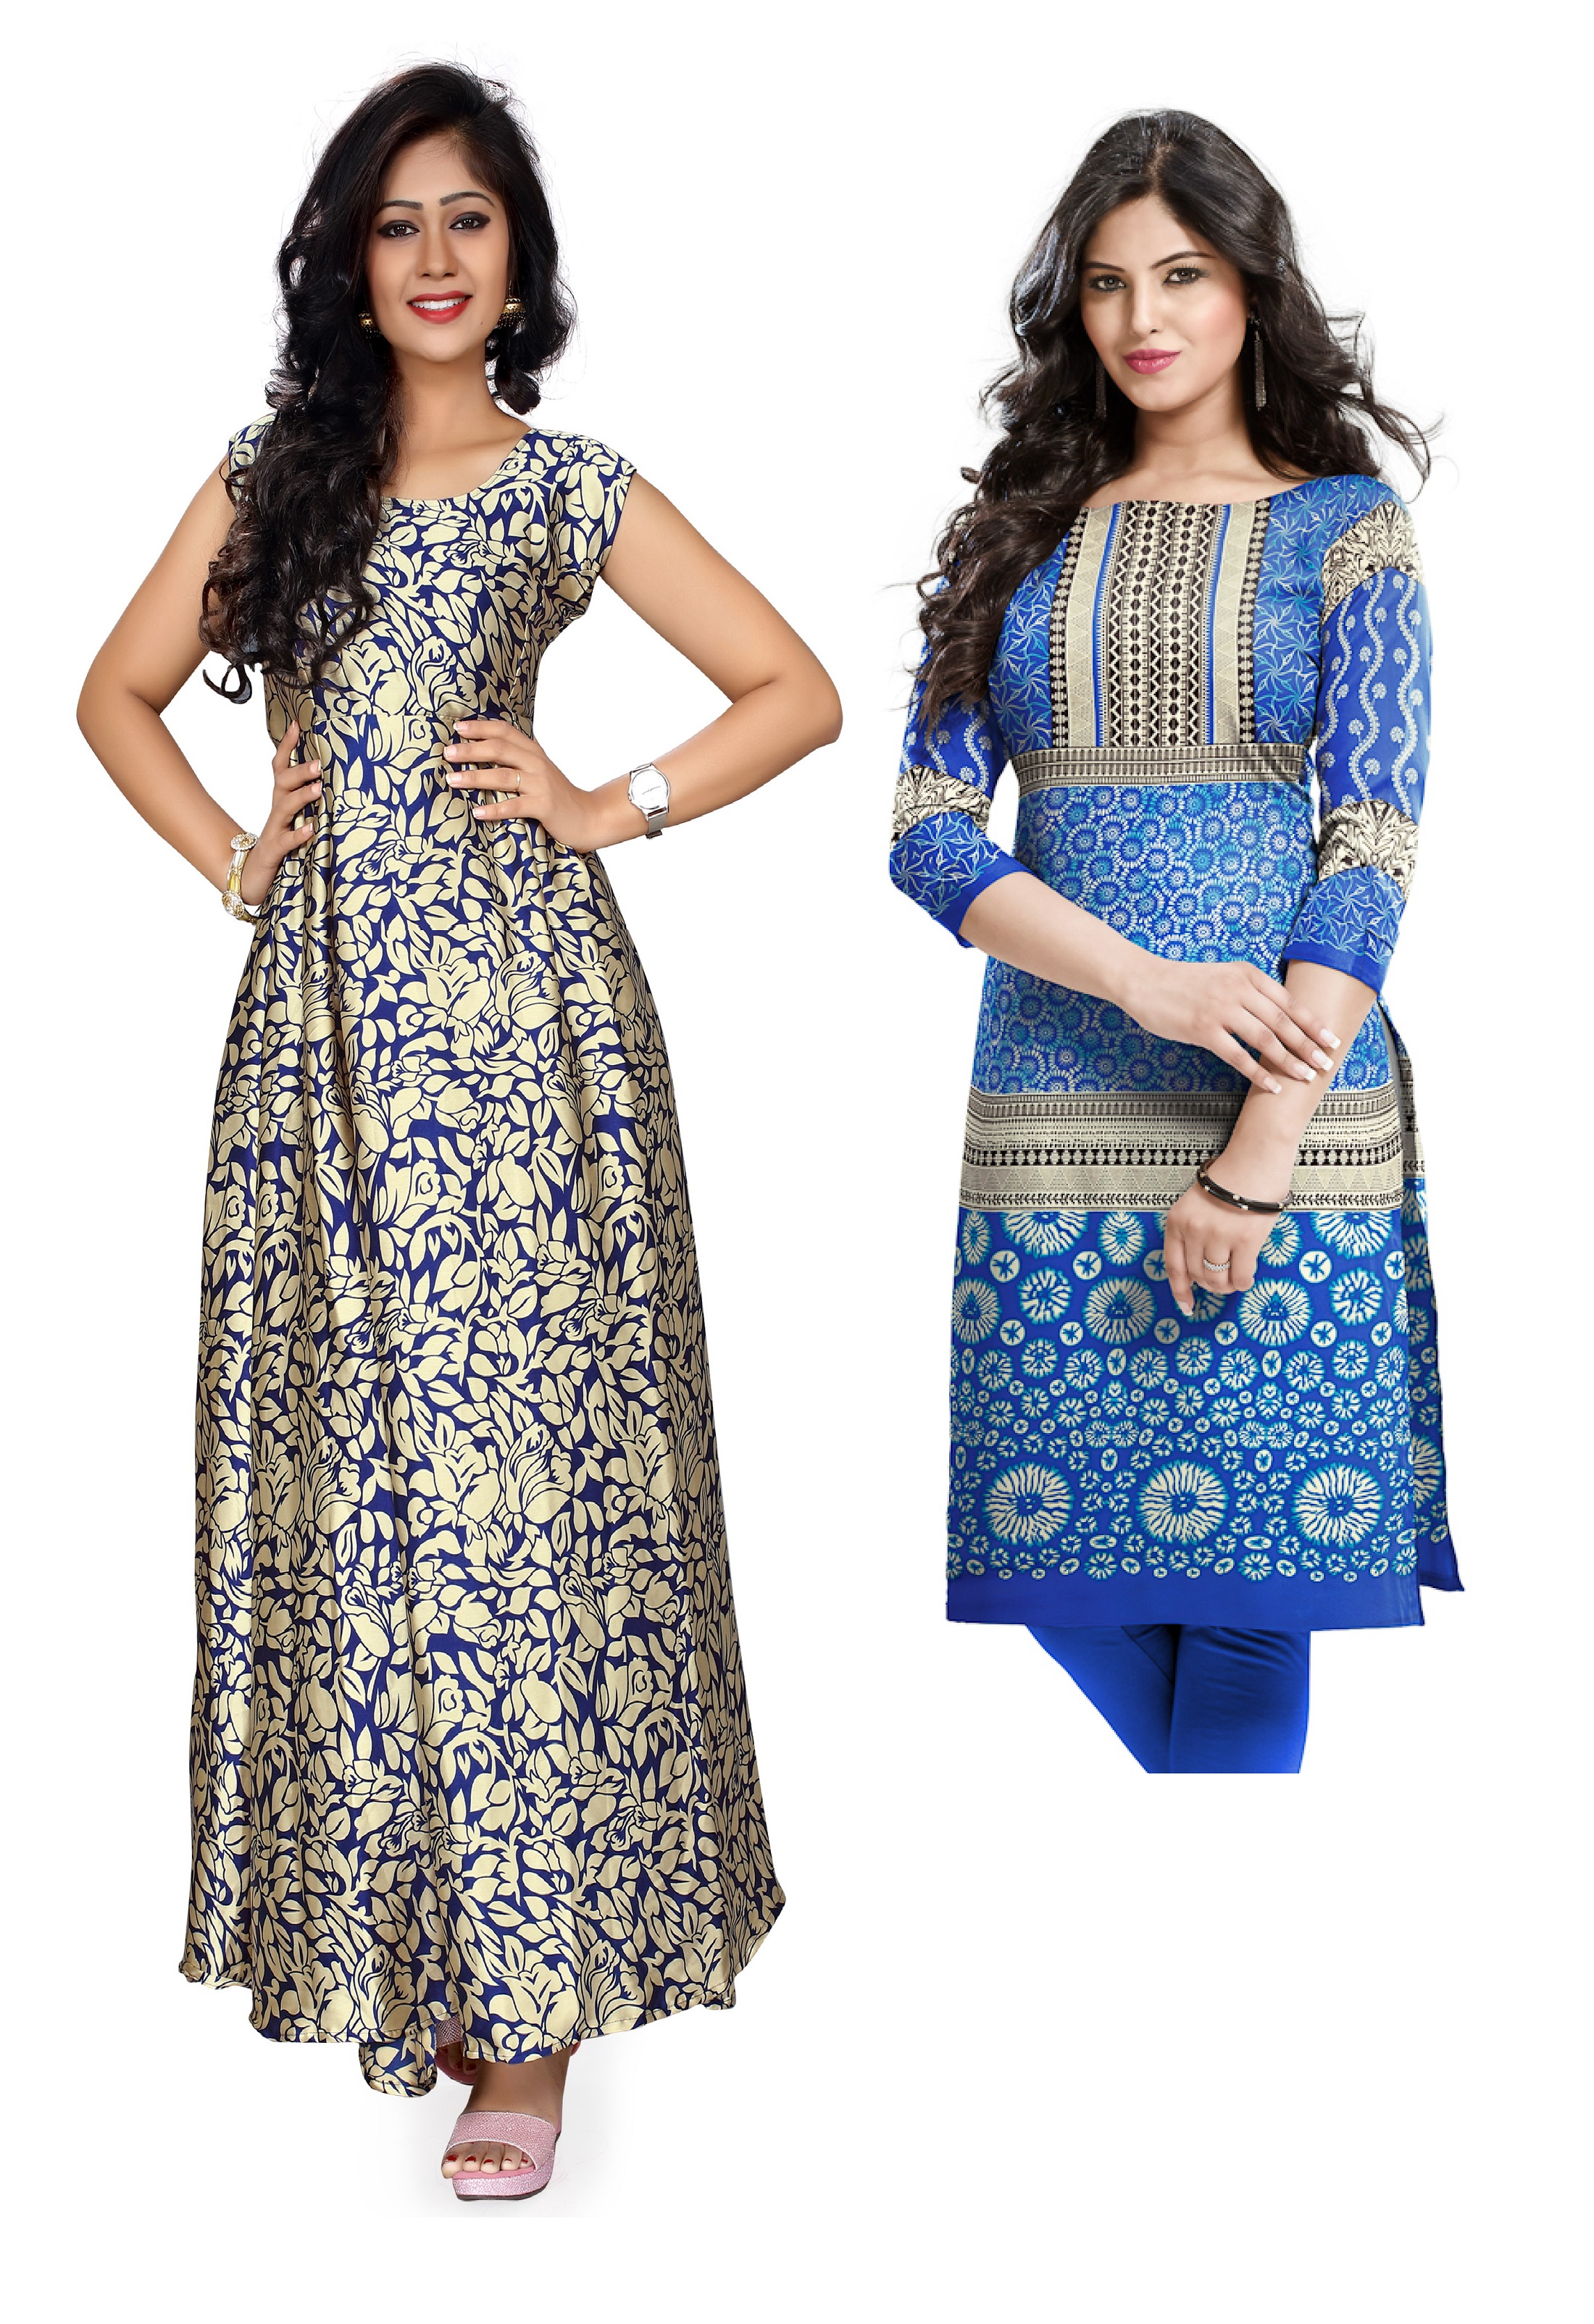 Upto 77% Off On Beige Blue Color Party Wear Gown + Cotton Kurti Unstitch Soumiya Gown/sl708 By Craftsvilla @ Rs.1299